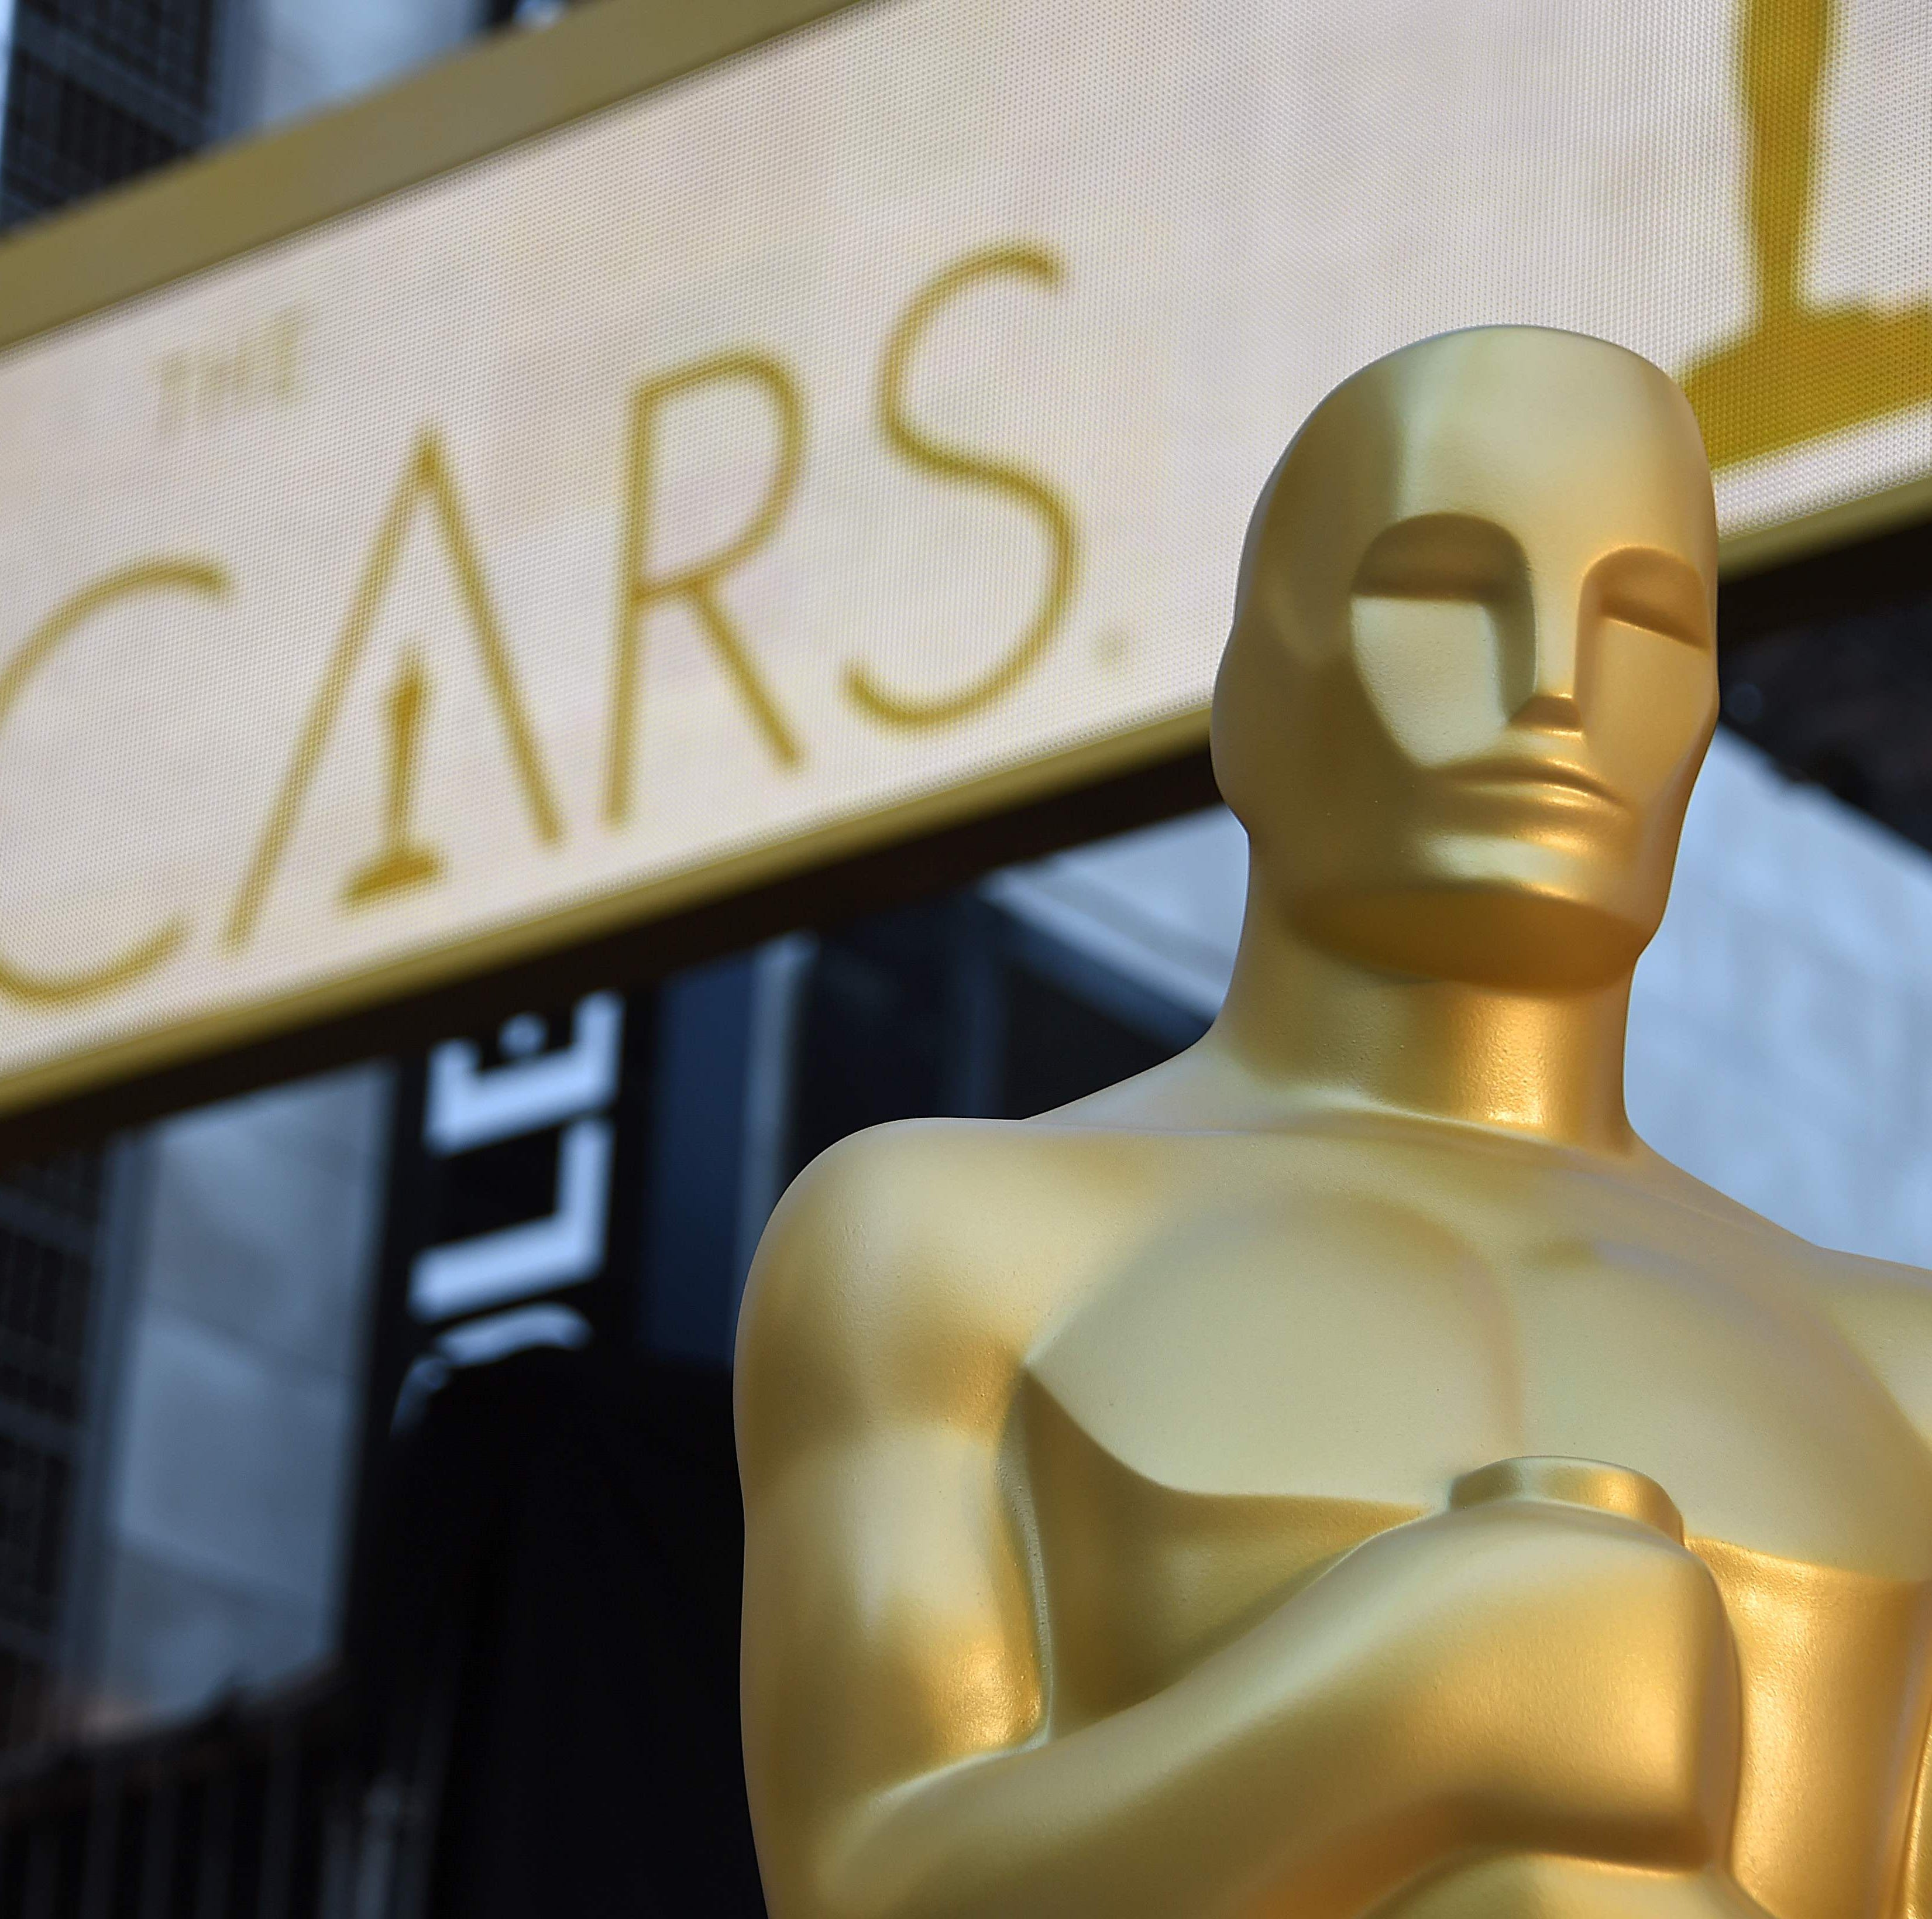 And our Student Voices Oscars go to...